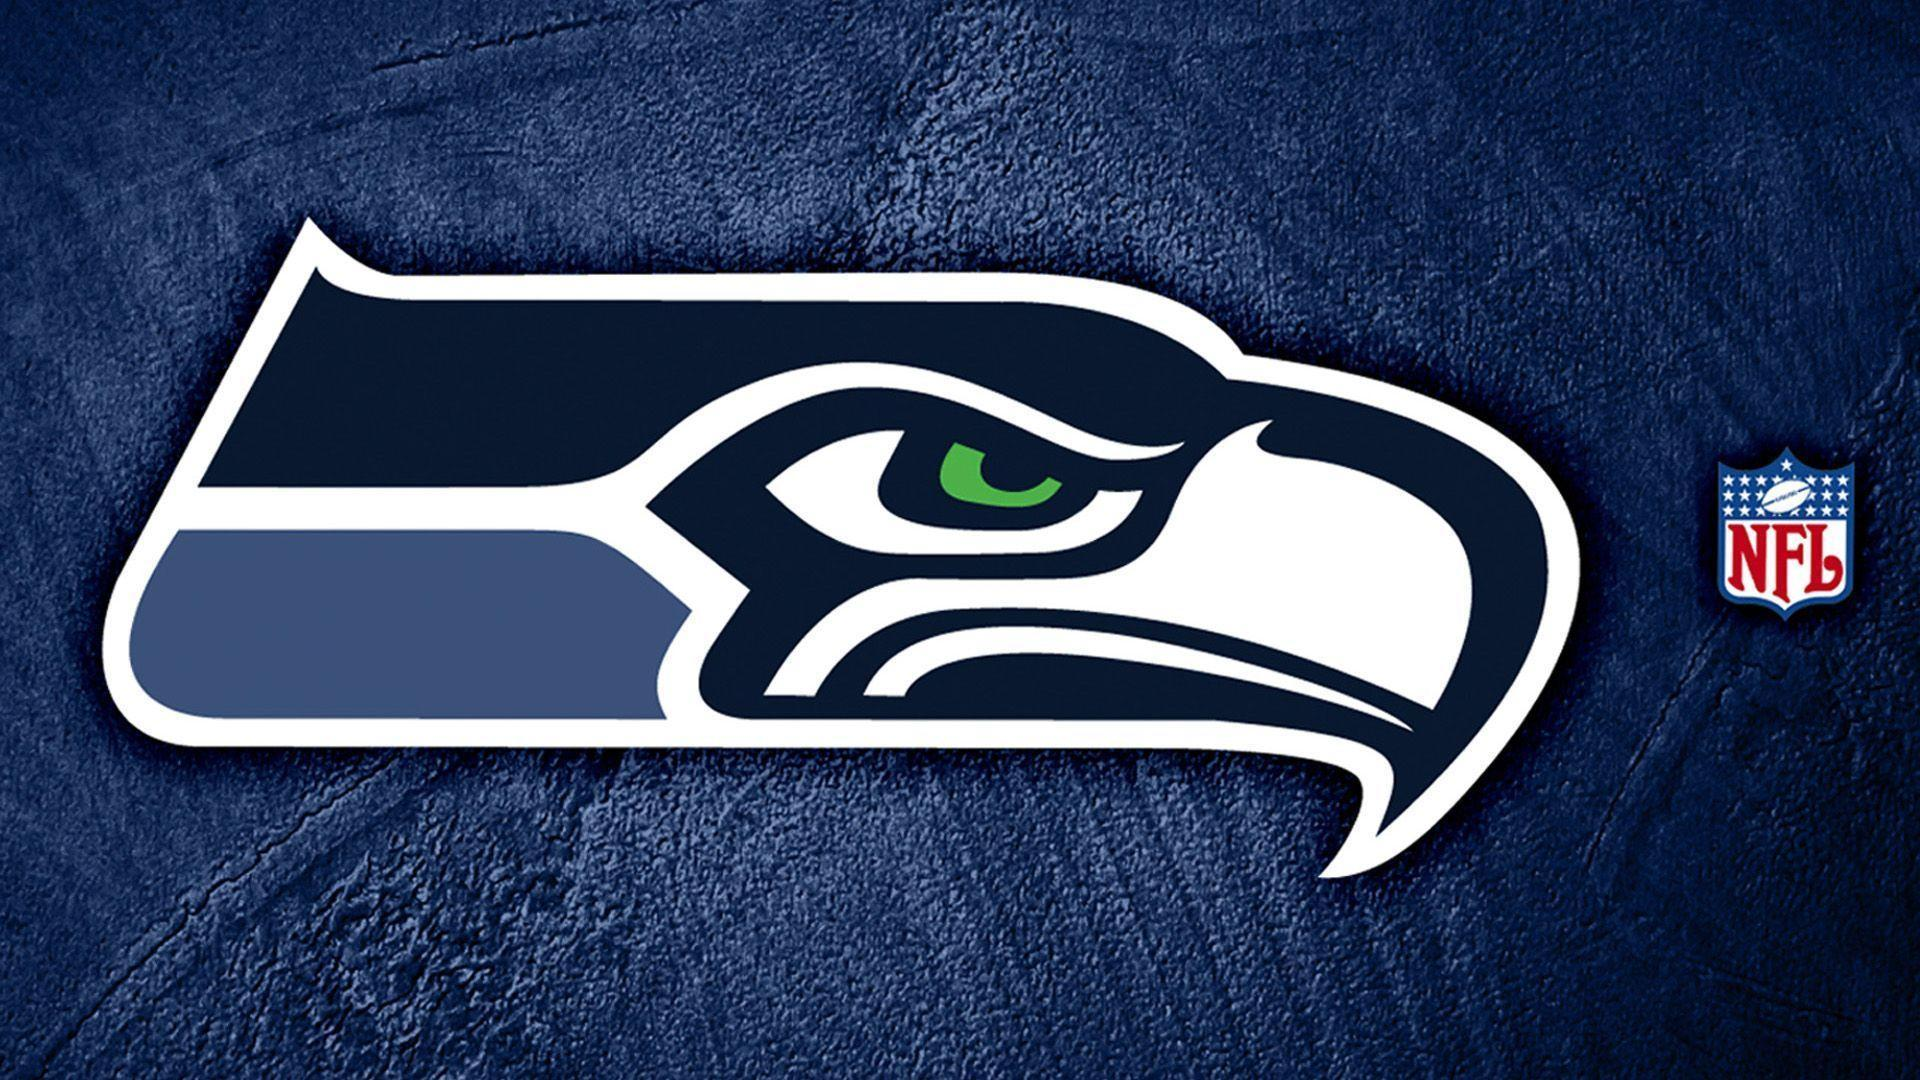 Logo NFL Team Seattle Seahawks Wallpapers Wides Wallpapers